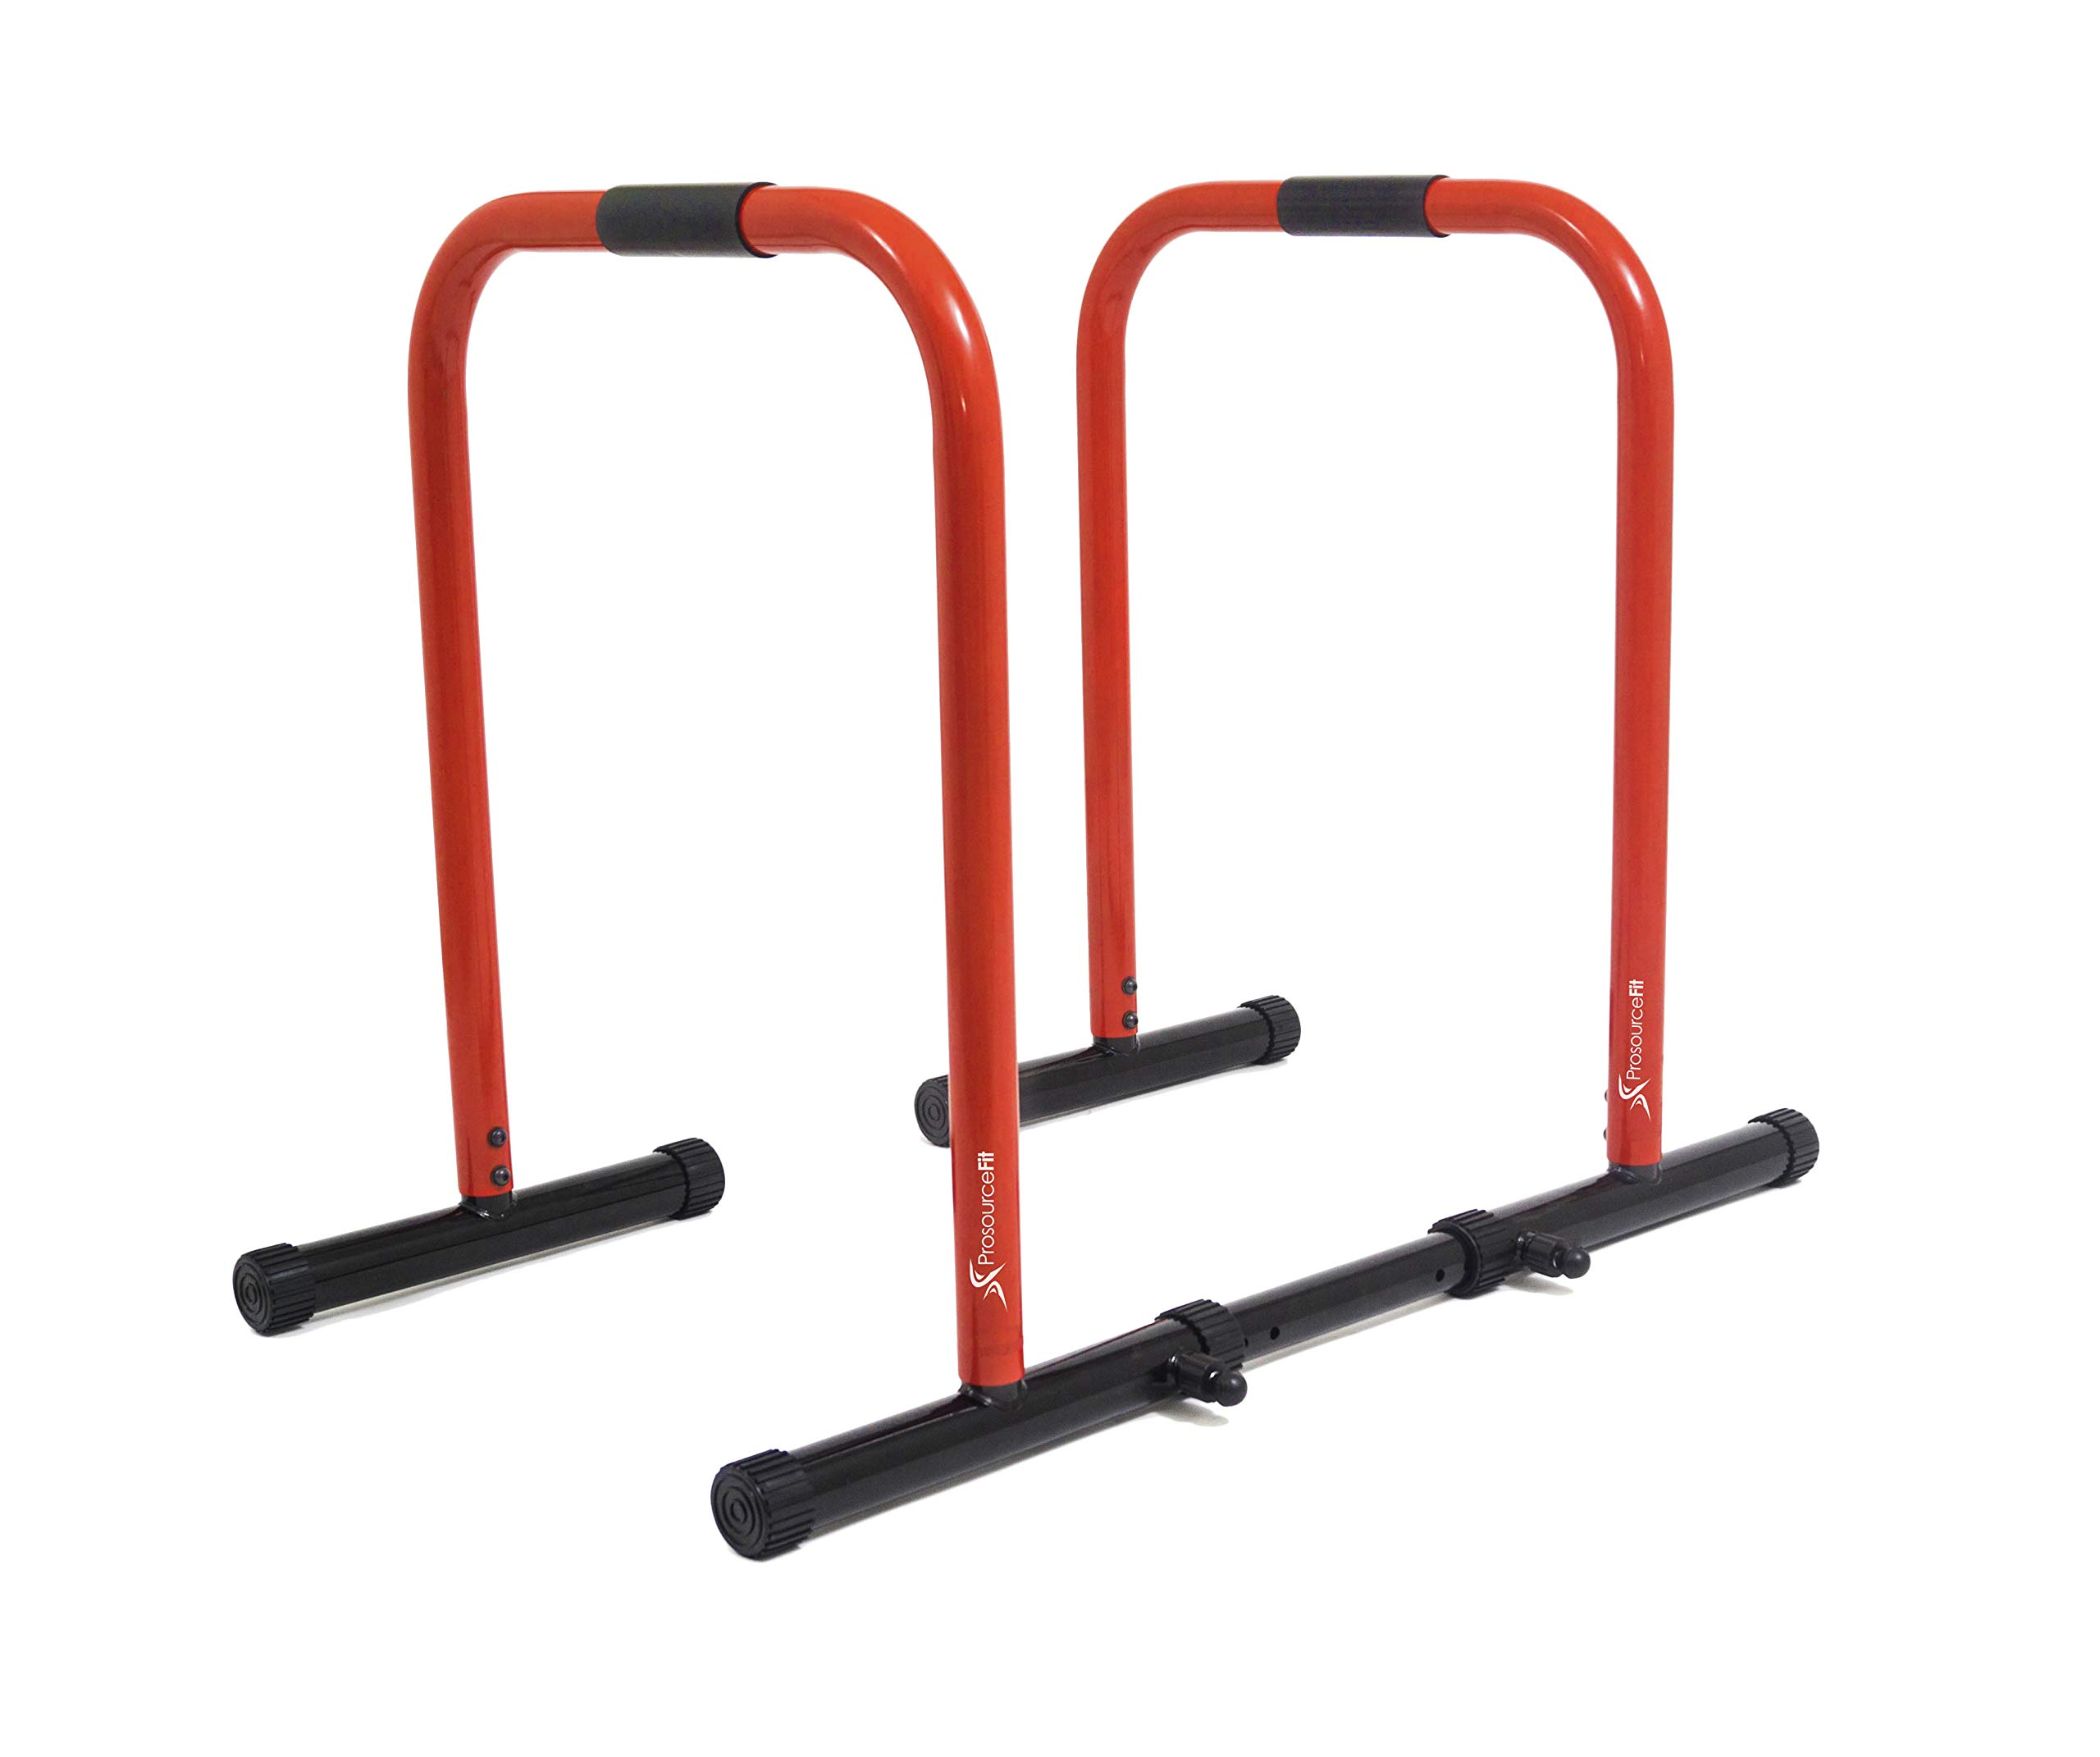 ProsourceFit Dip Stand Station, Heavy Duty Ultimate Body Press Bar with Safety Connector for Tricep Dips, Pull-Ups, Push-Ups, L-Sits, Red by ProsourceFit (Image #1)